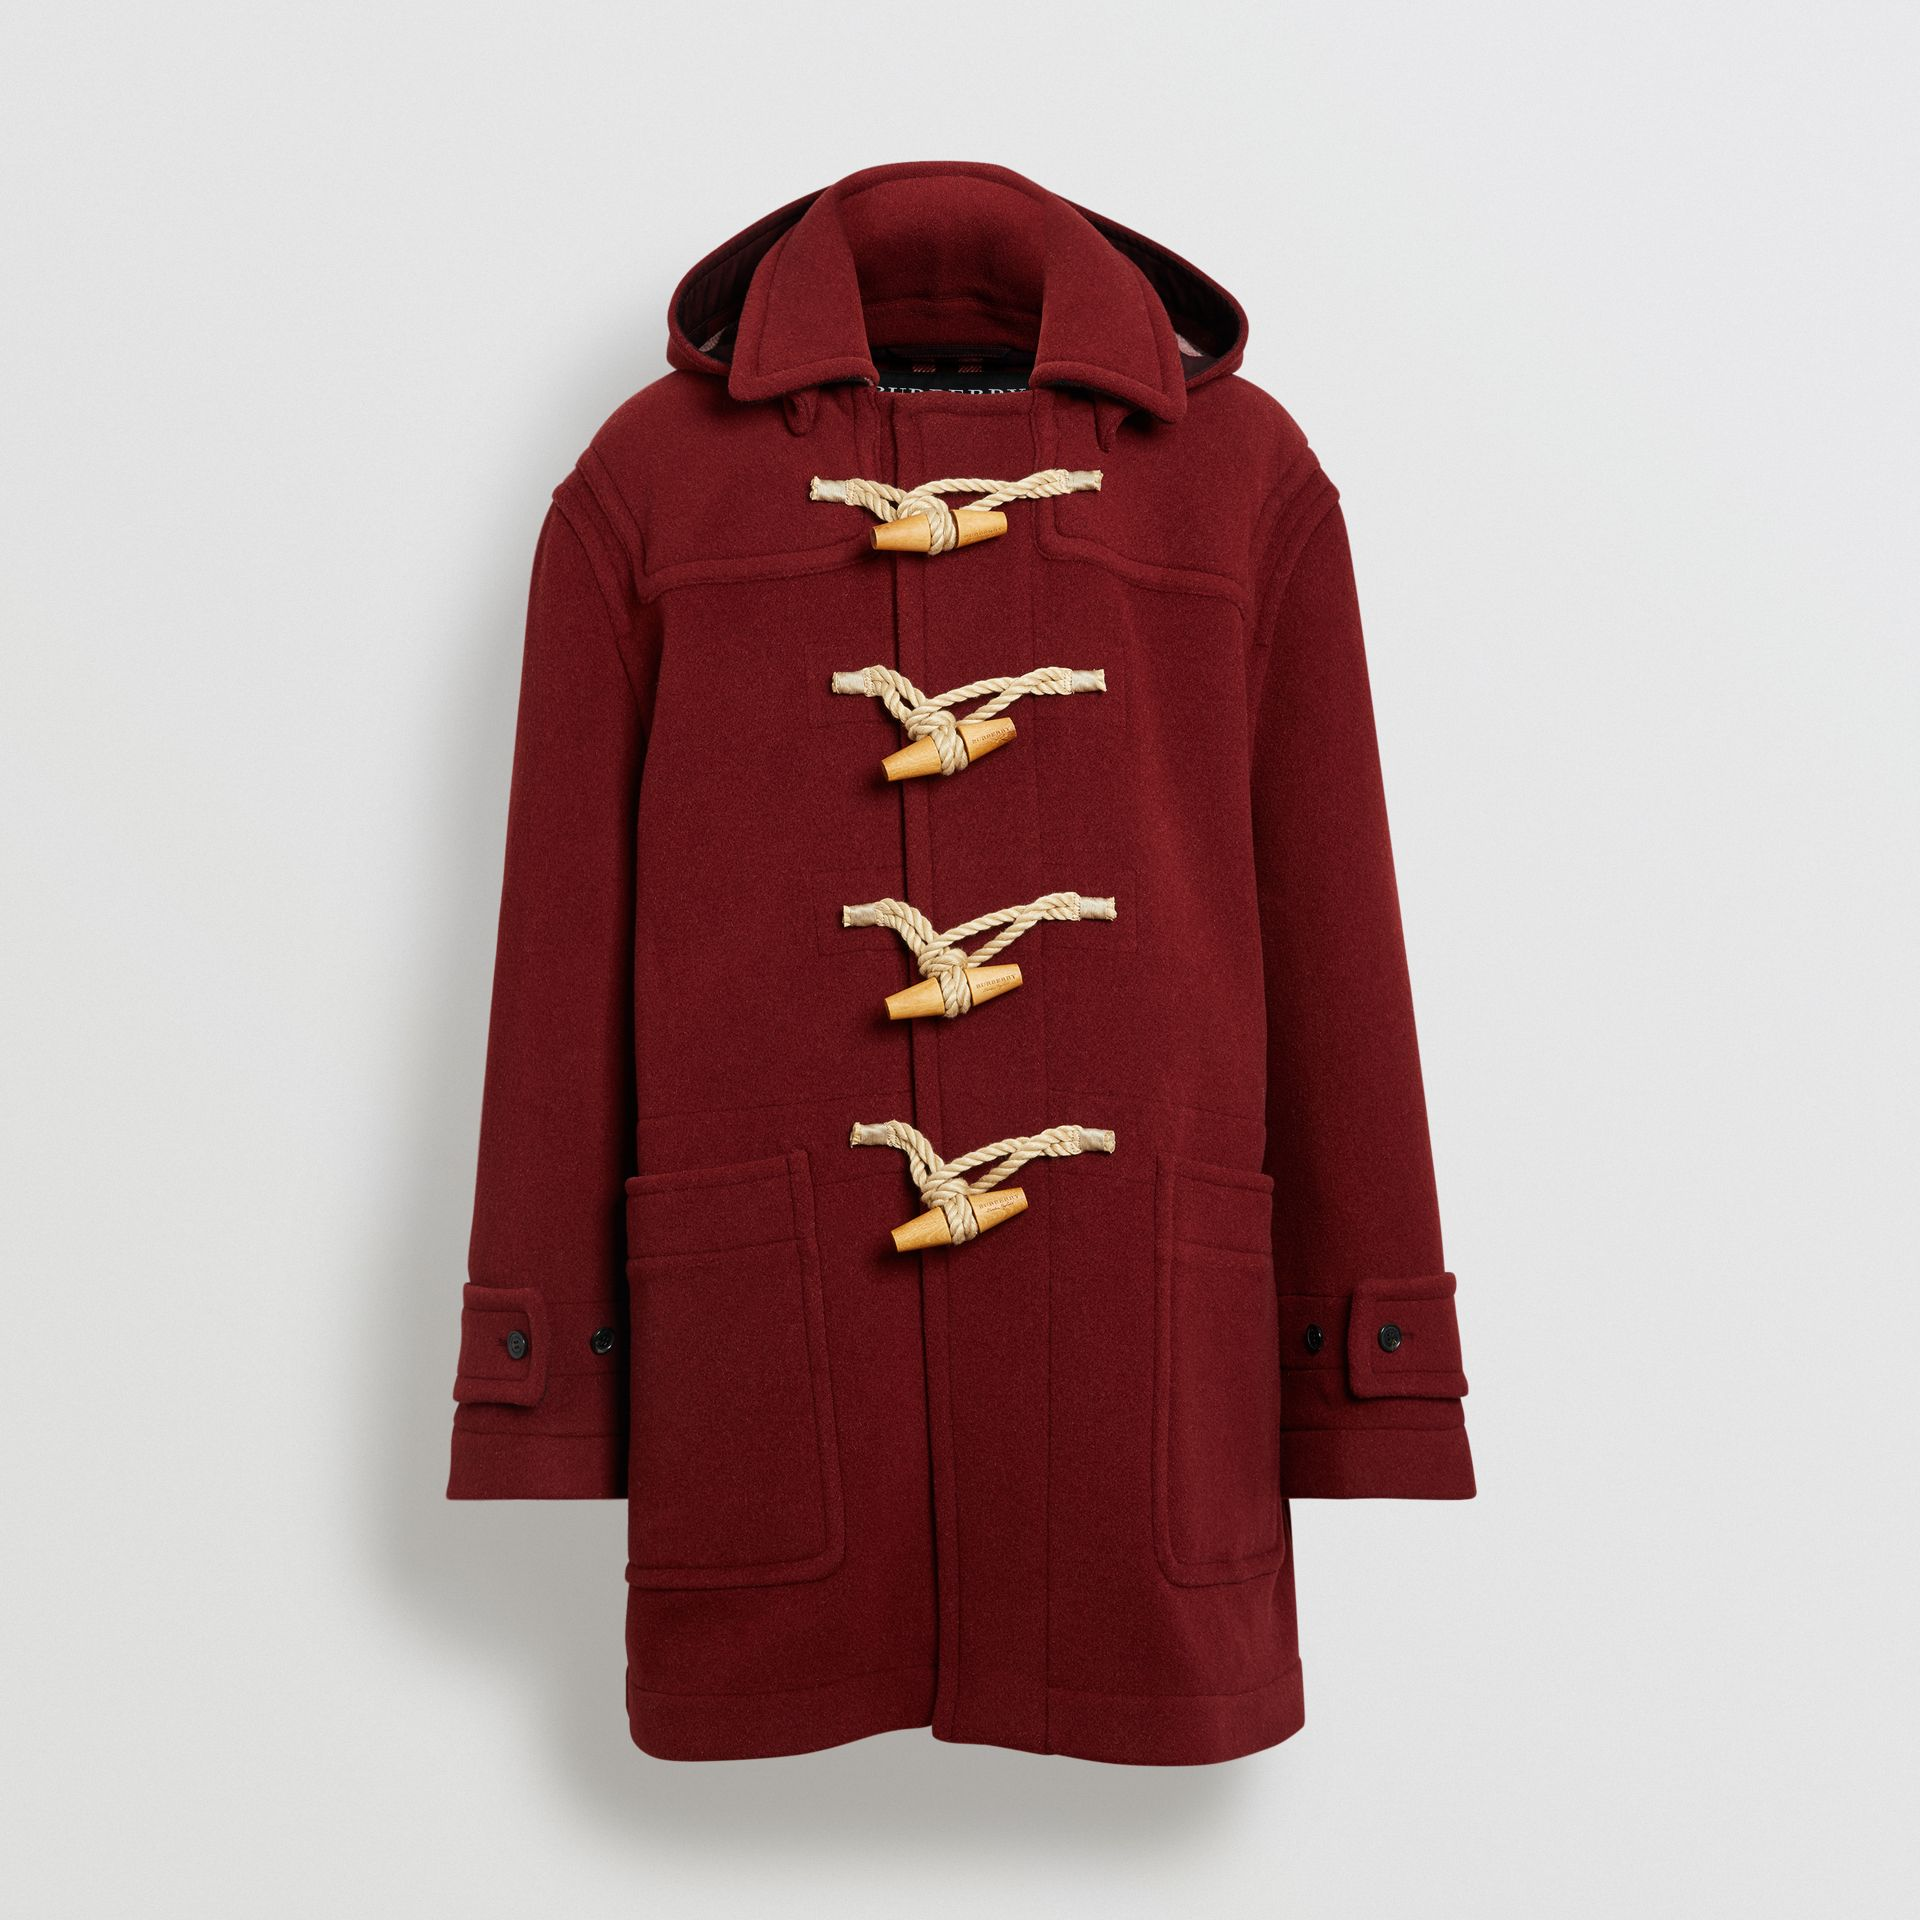 Gosha x Burberry Oversized Duffle Coat in Claret | Burberry - gallery image 3